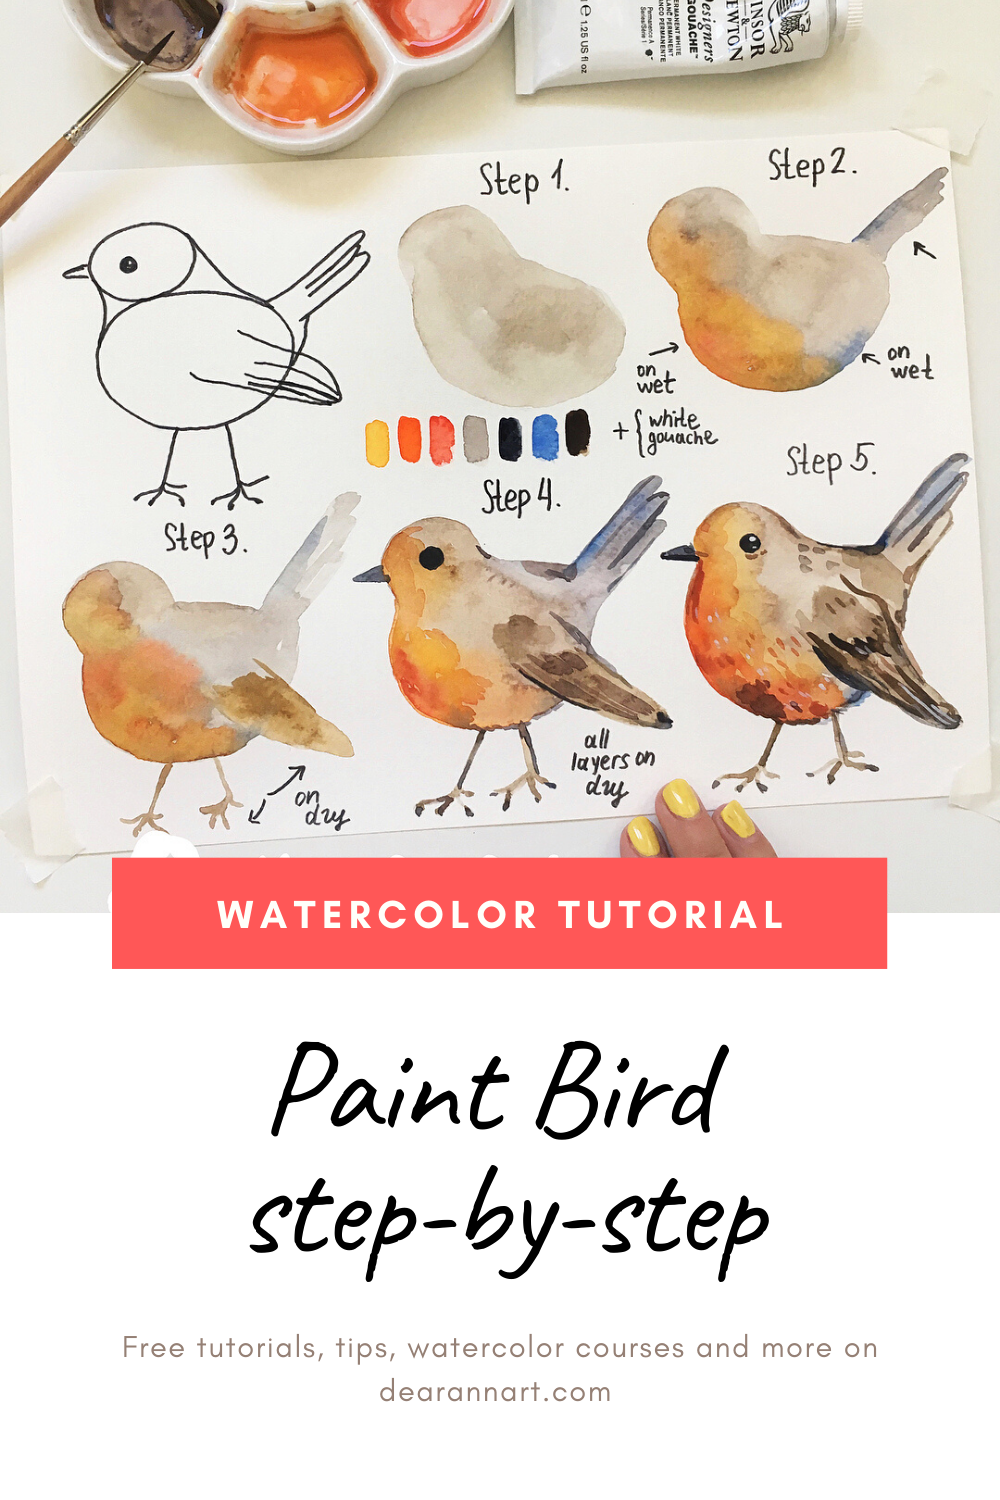 In this watercolor tutorial, you will learn how to paint a bird with watercolor. Click the image or link above to see the full art tutorial.